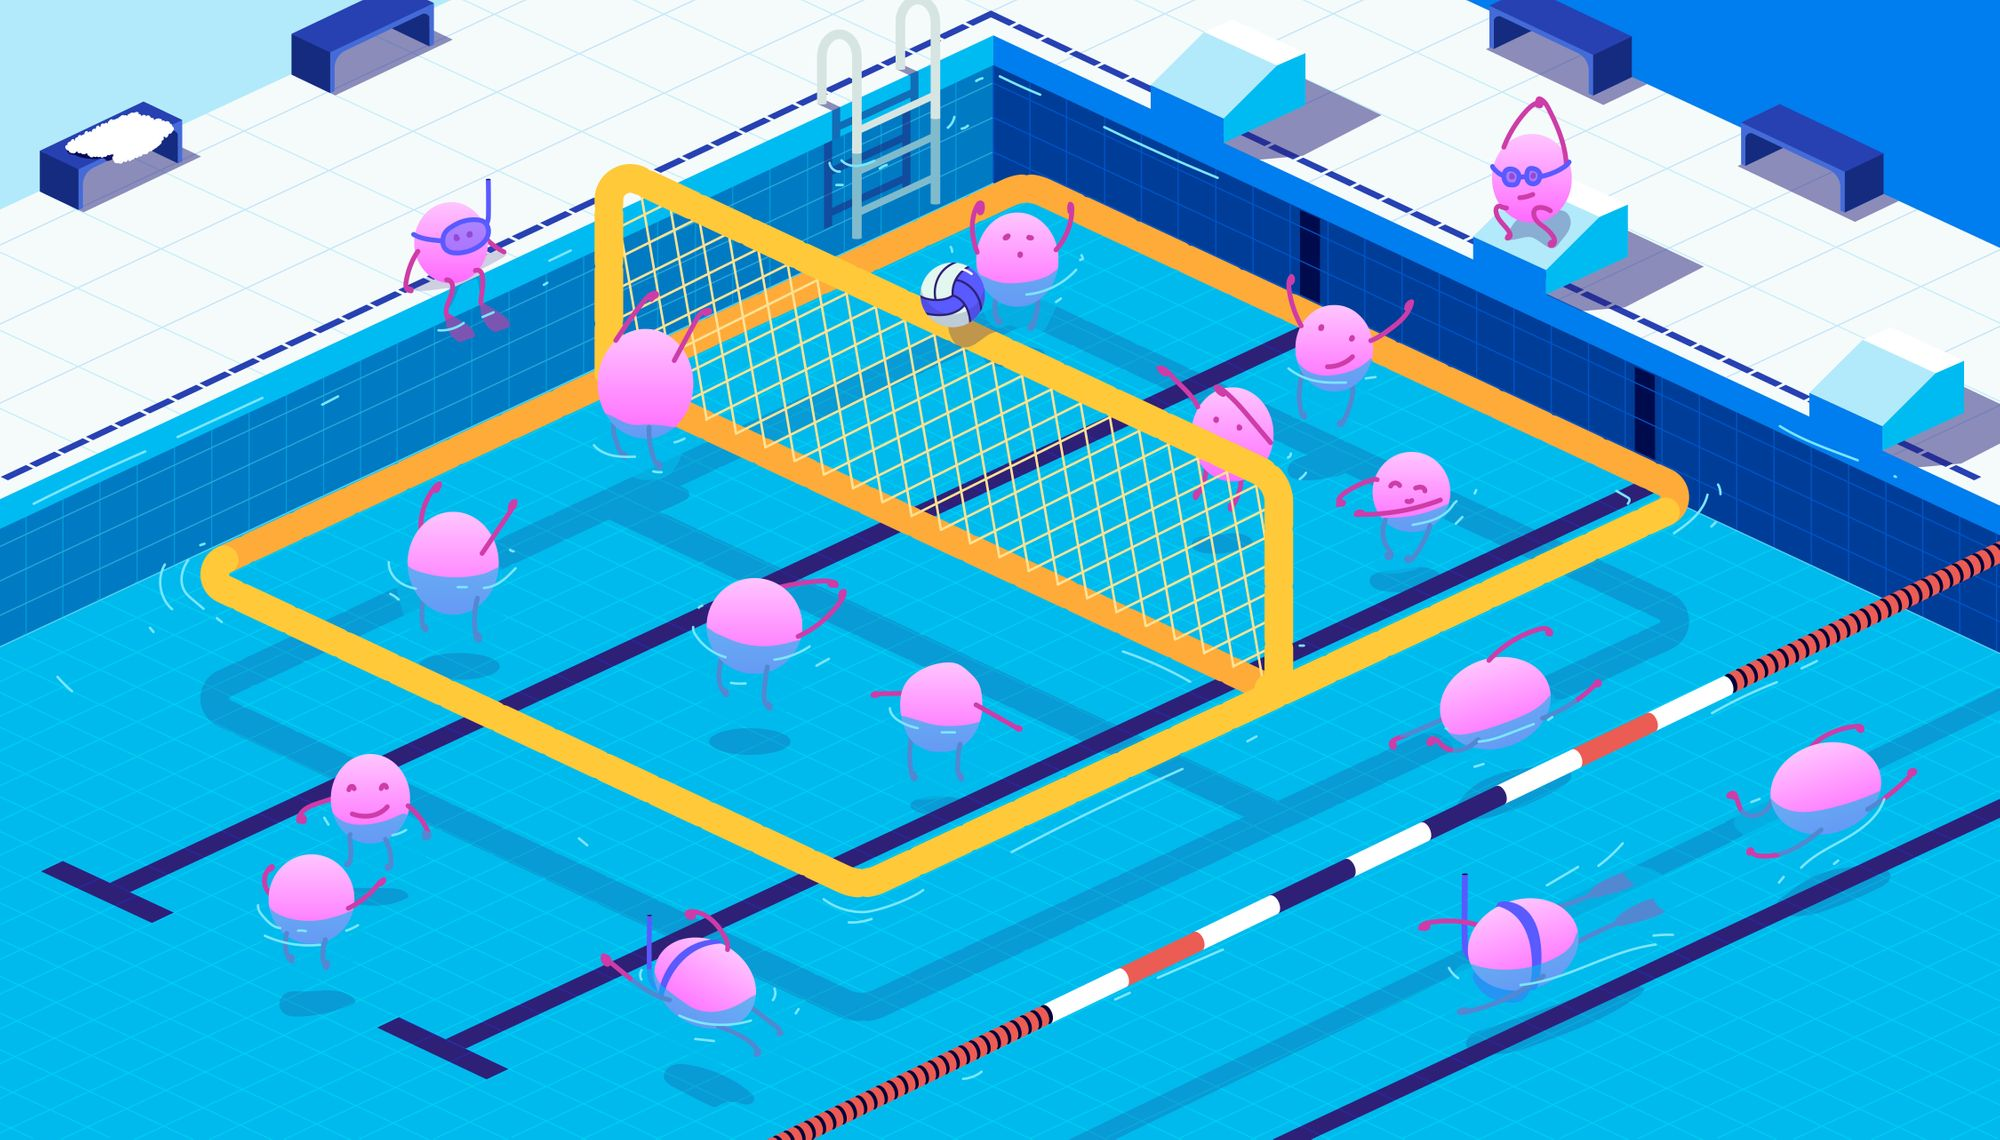 2019_03_21-water_volleybal-1